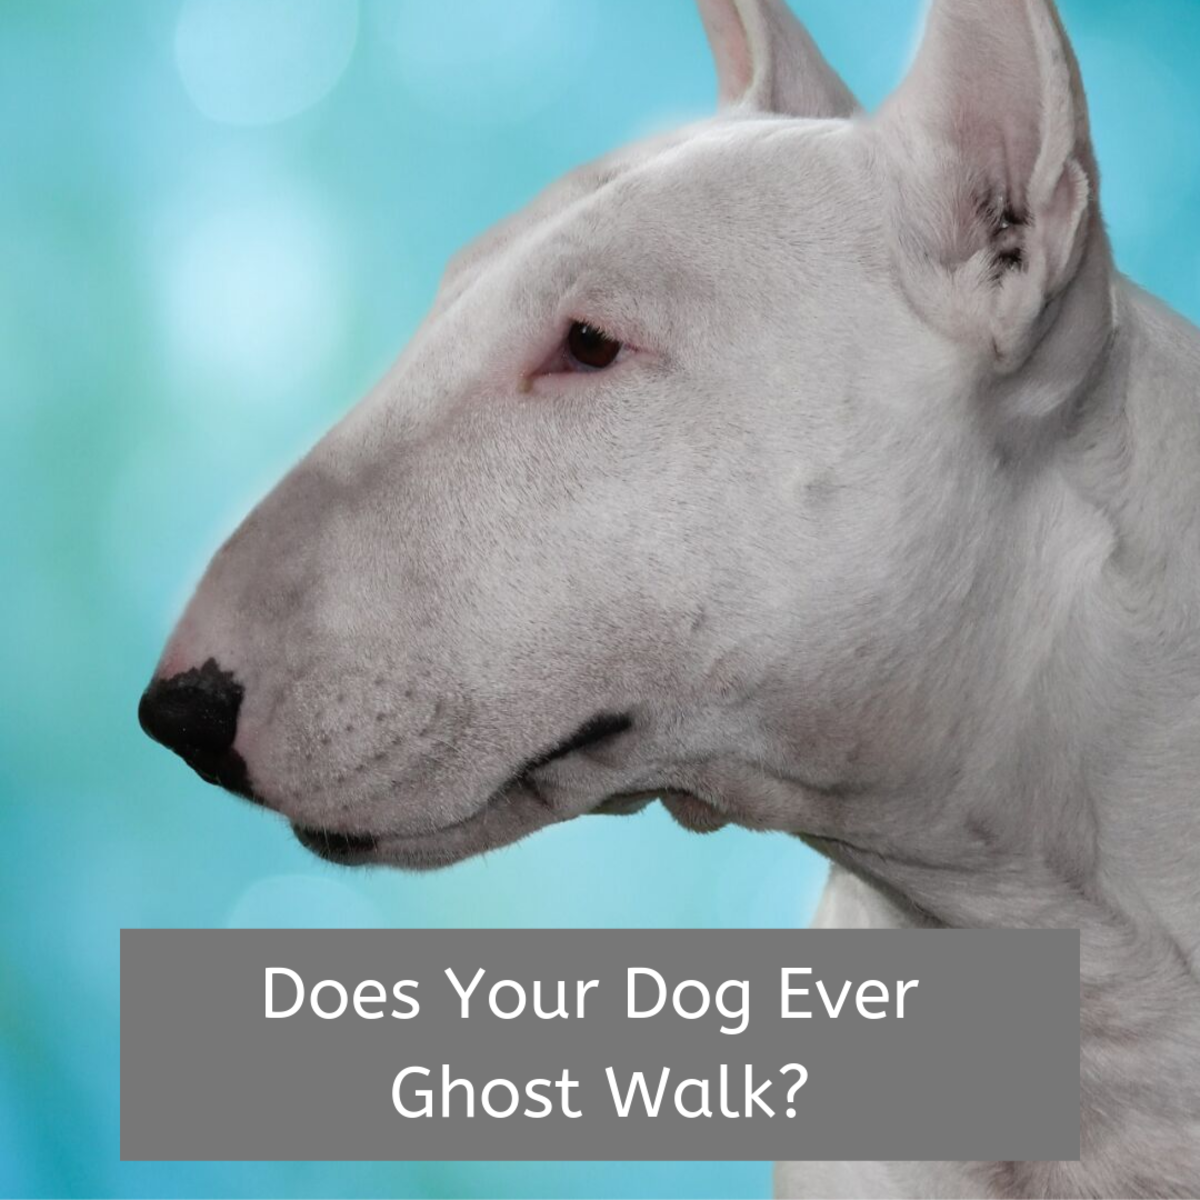 Why Do Bull Terriers and Some Other Dogs Ghost Walk?